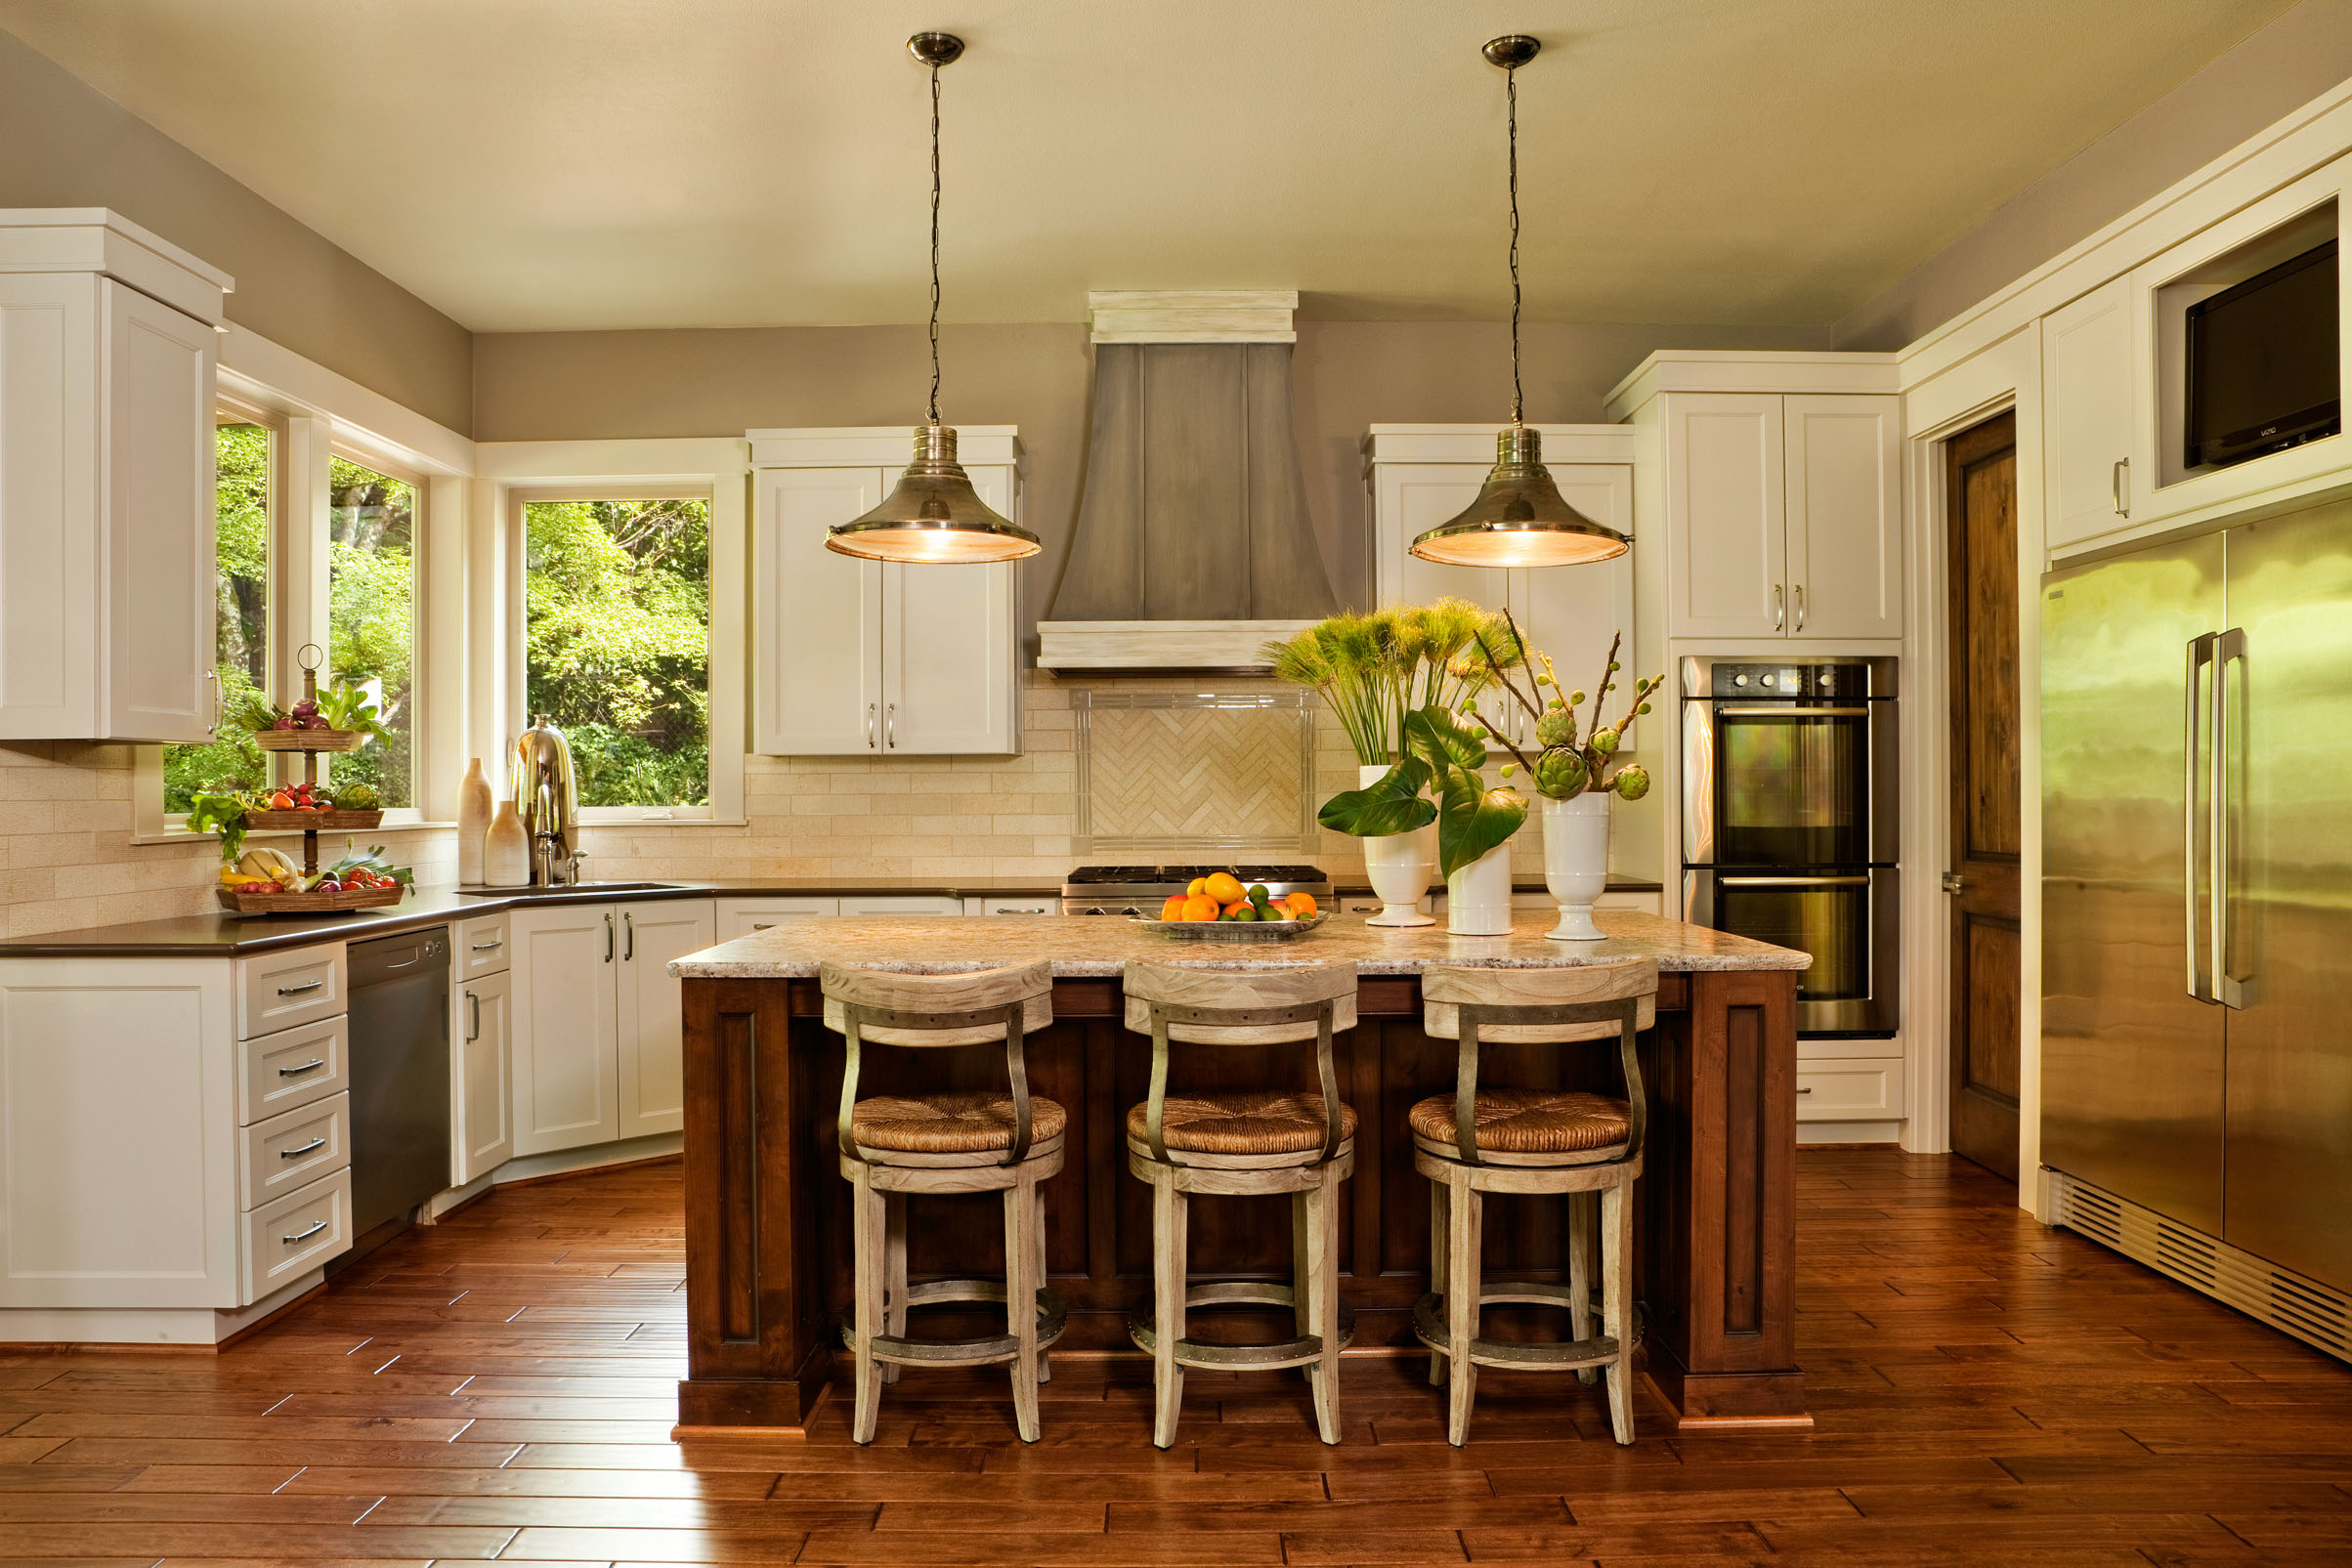 GHID s Top 5 Kitchen Designs — Garrison Hullinger Interior Design